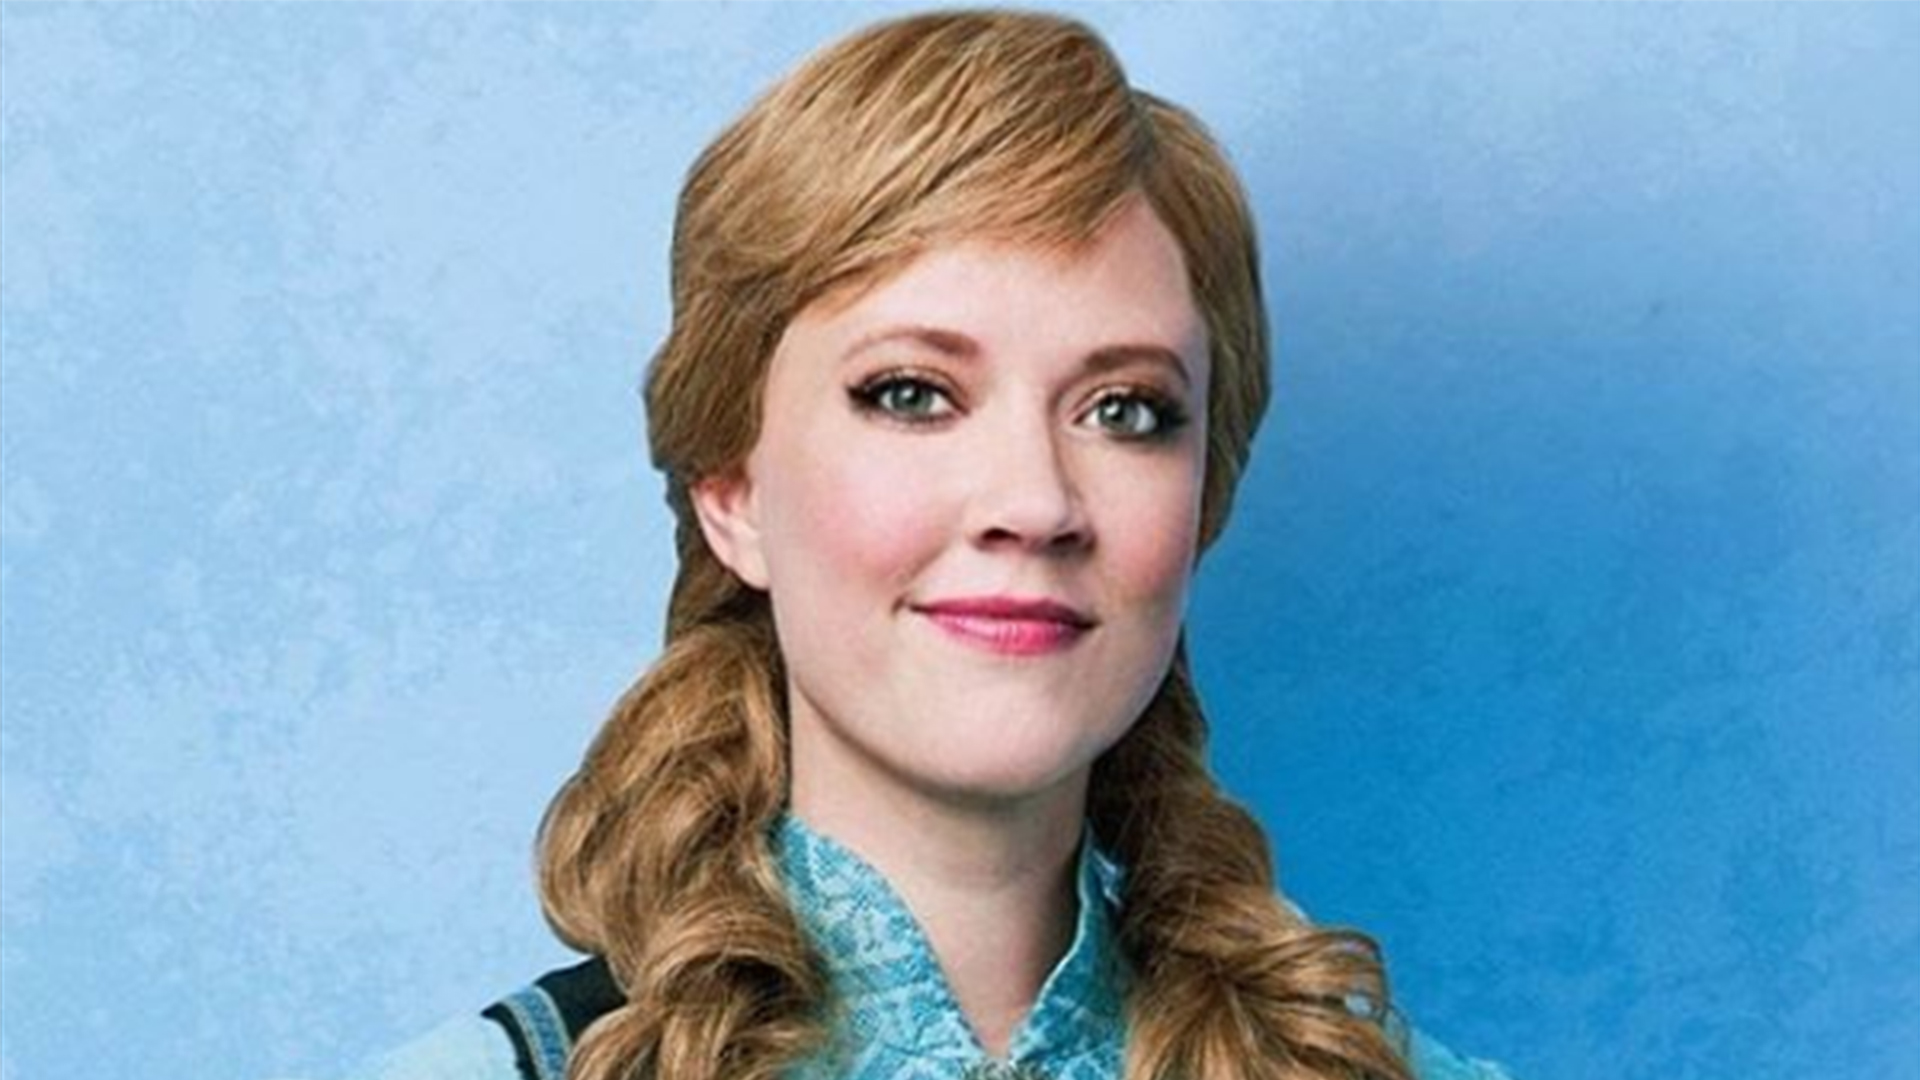 Frozen' actress cancels Broadway performance due to 'massive